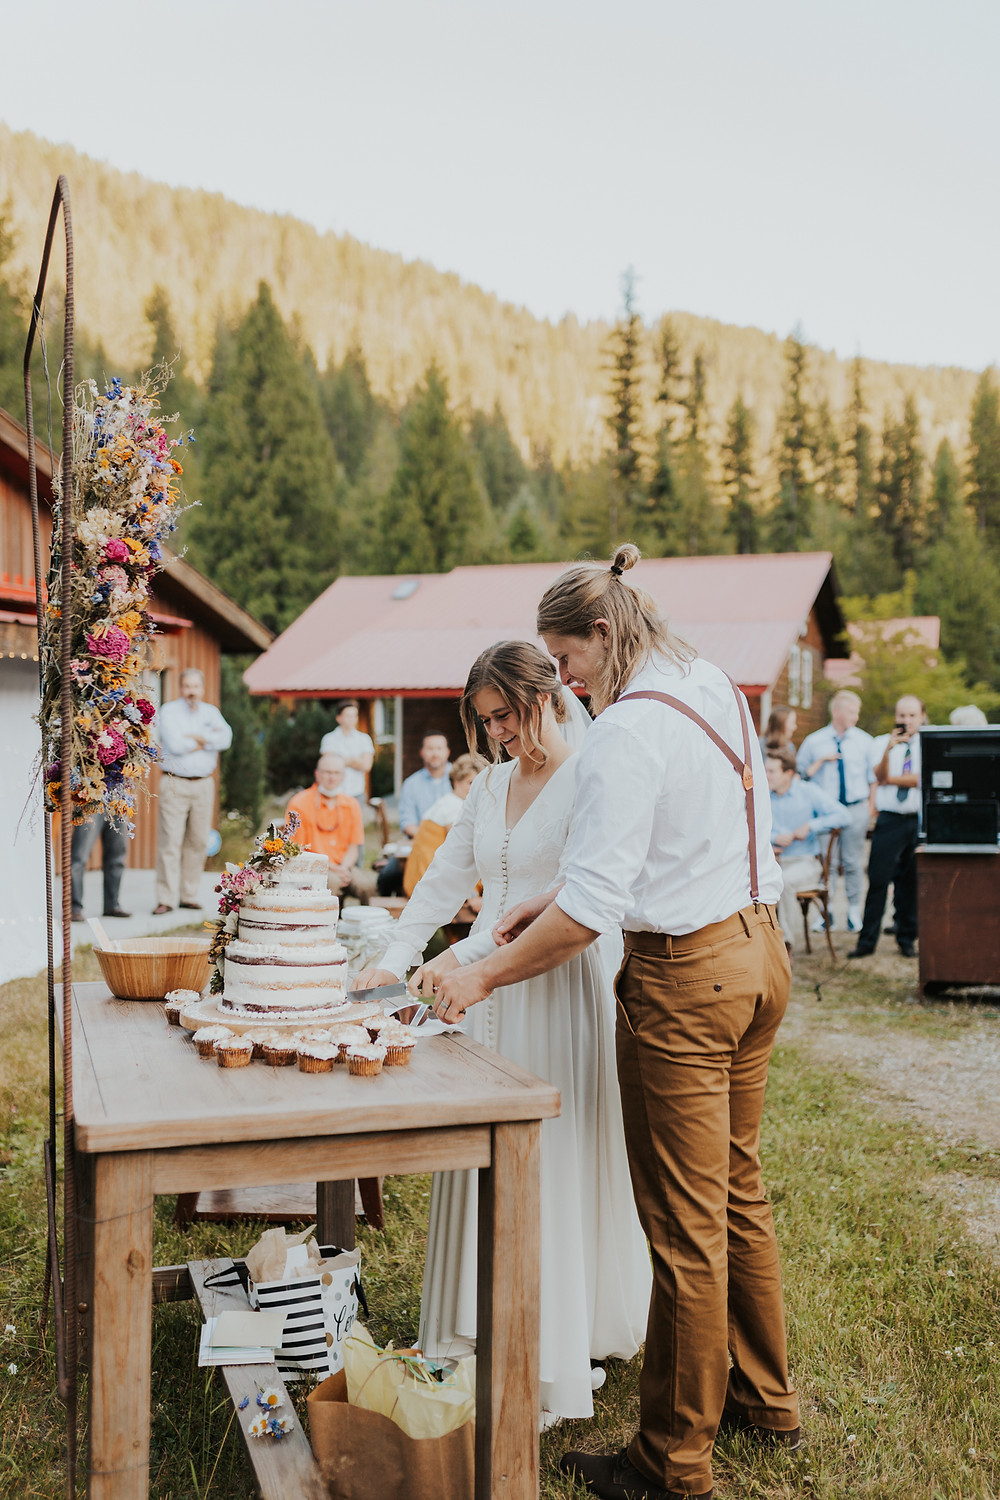 Cake Cutting in Idaho Mountains